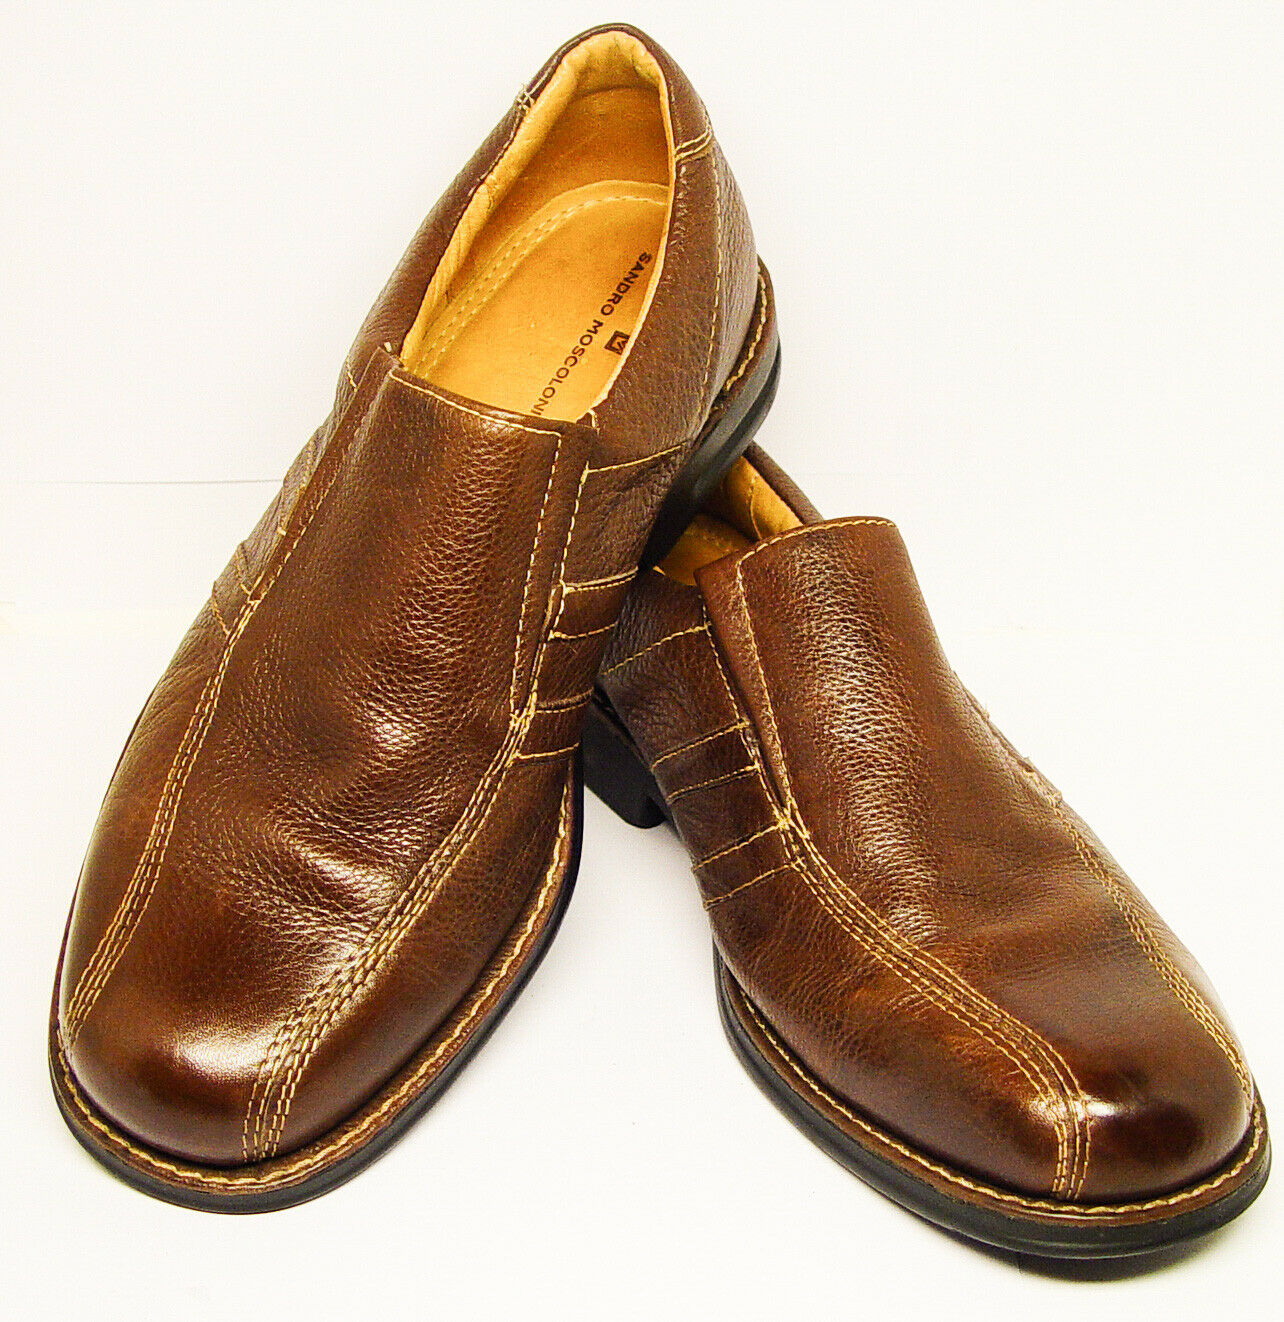 Sandro Moscoloni 9.5D brown pebble leather bicycle toe slip on loafer good cond.